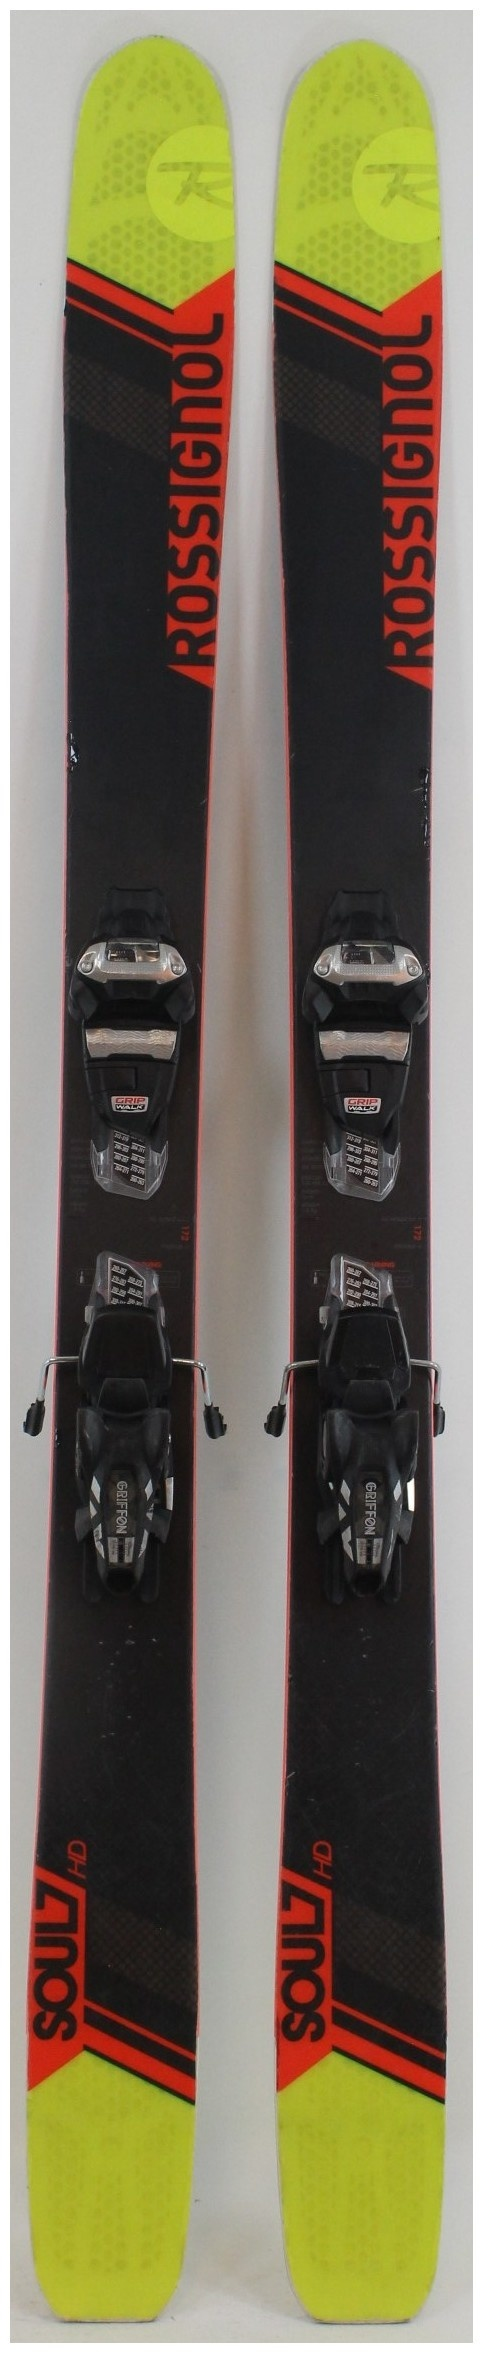 2017 Rossignol Soul 7 Hd Skis With Marker Griffon Demo Bindings Used Demo Skis 172cm